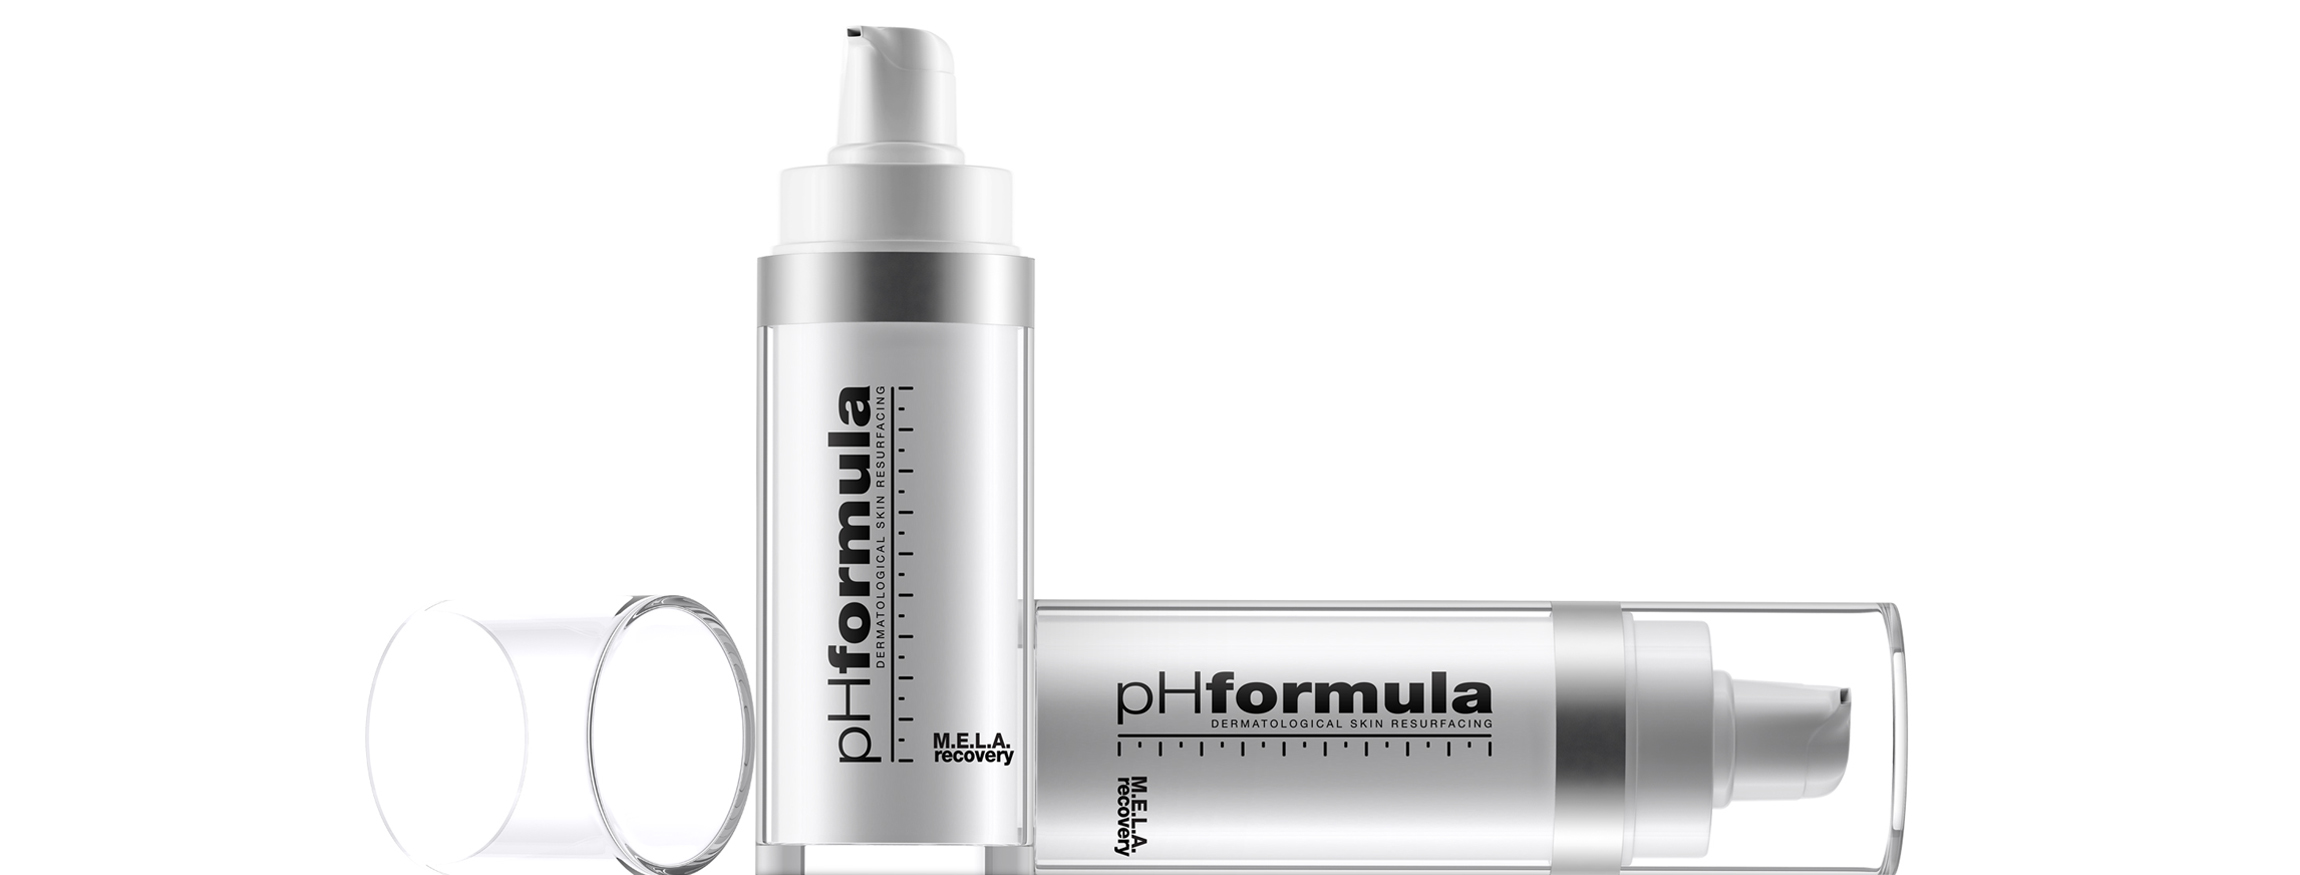 pHformula Solutions for Hyperpigmentation